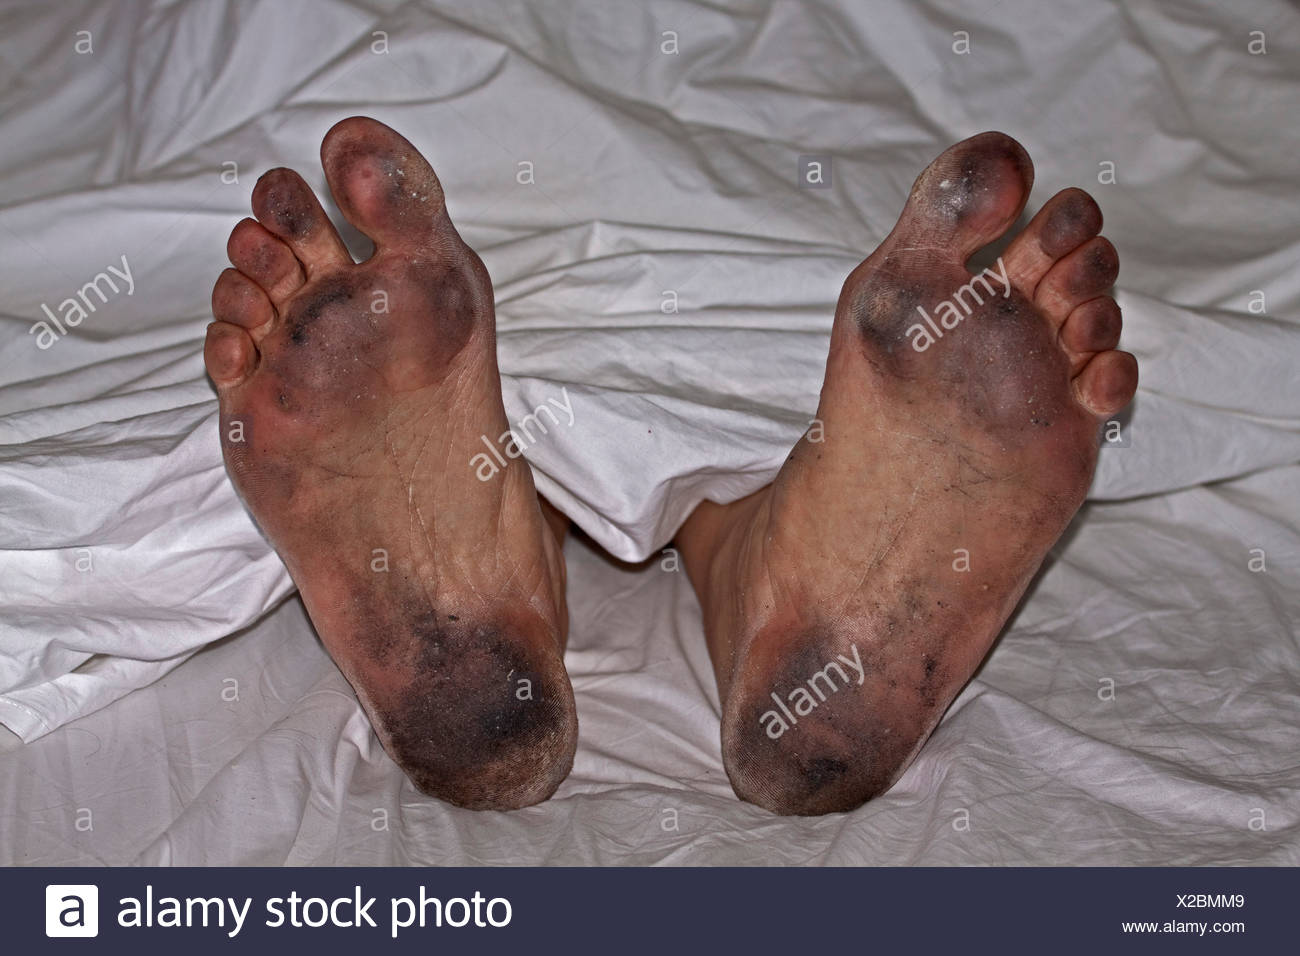 Ill-groomed dirty feet in white sheets, personal hygiene - Stock Image